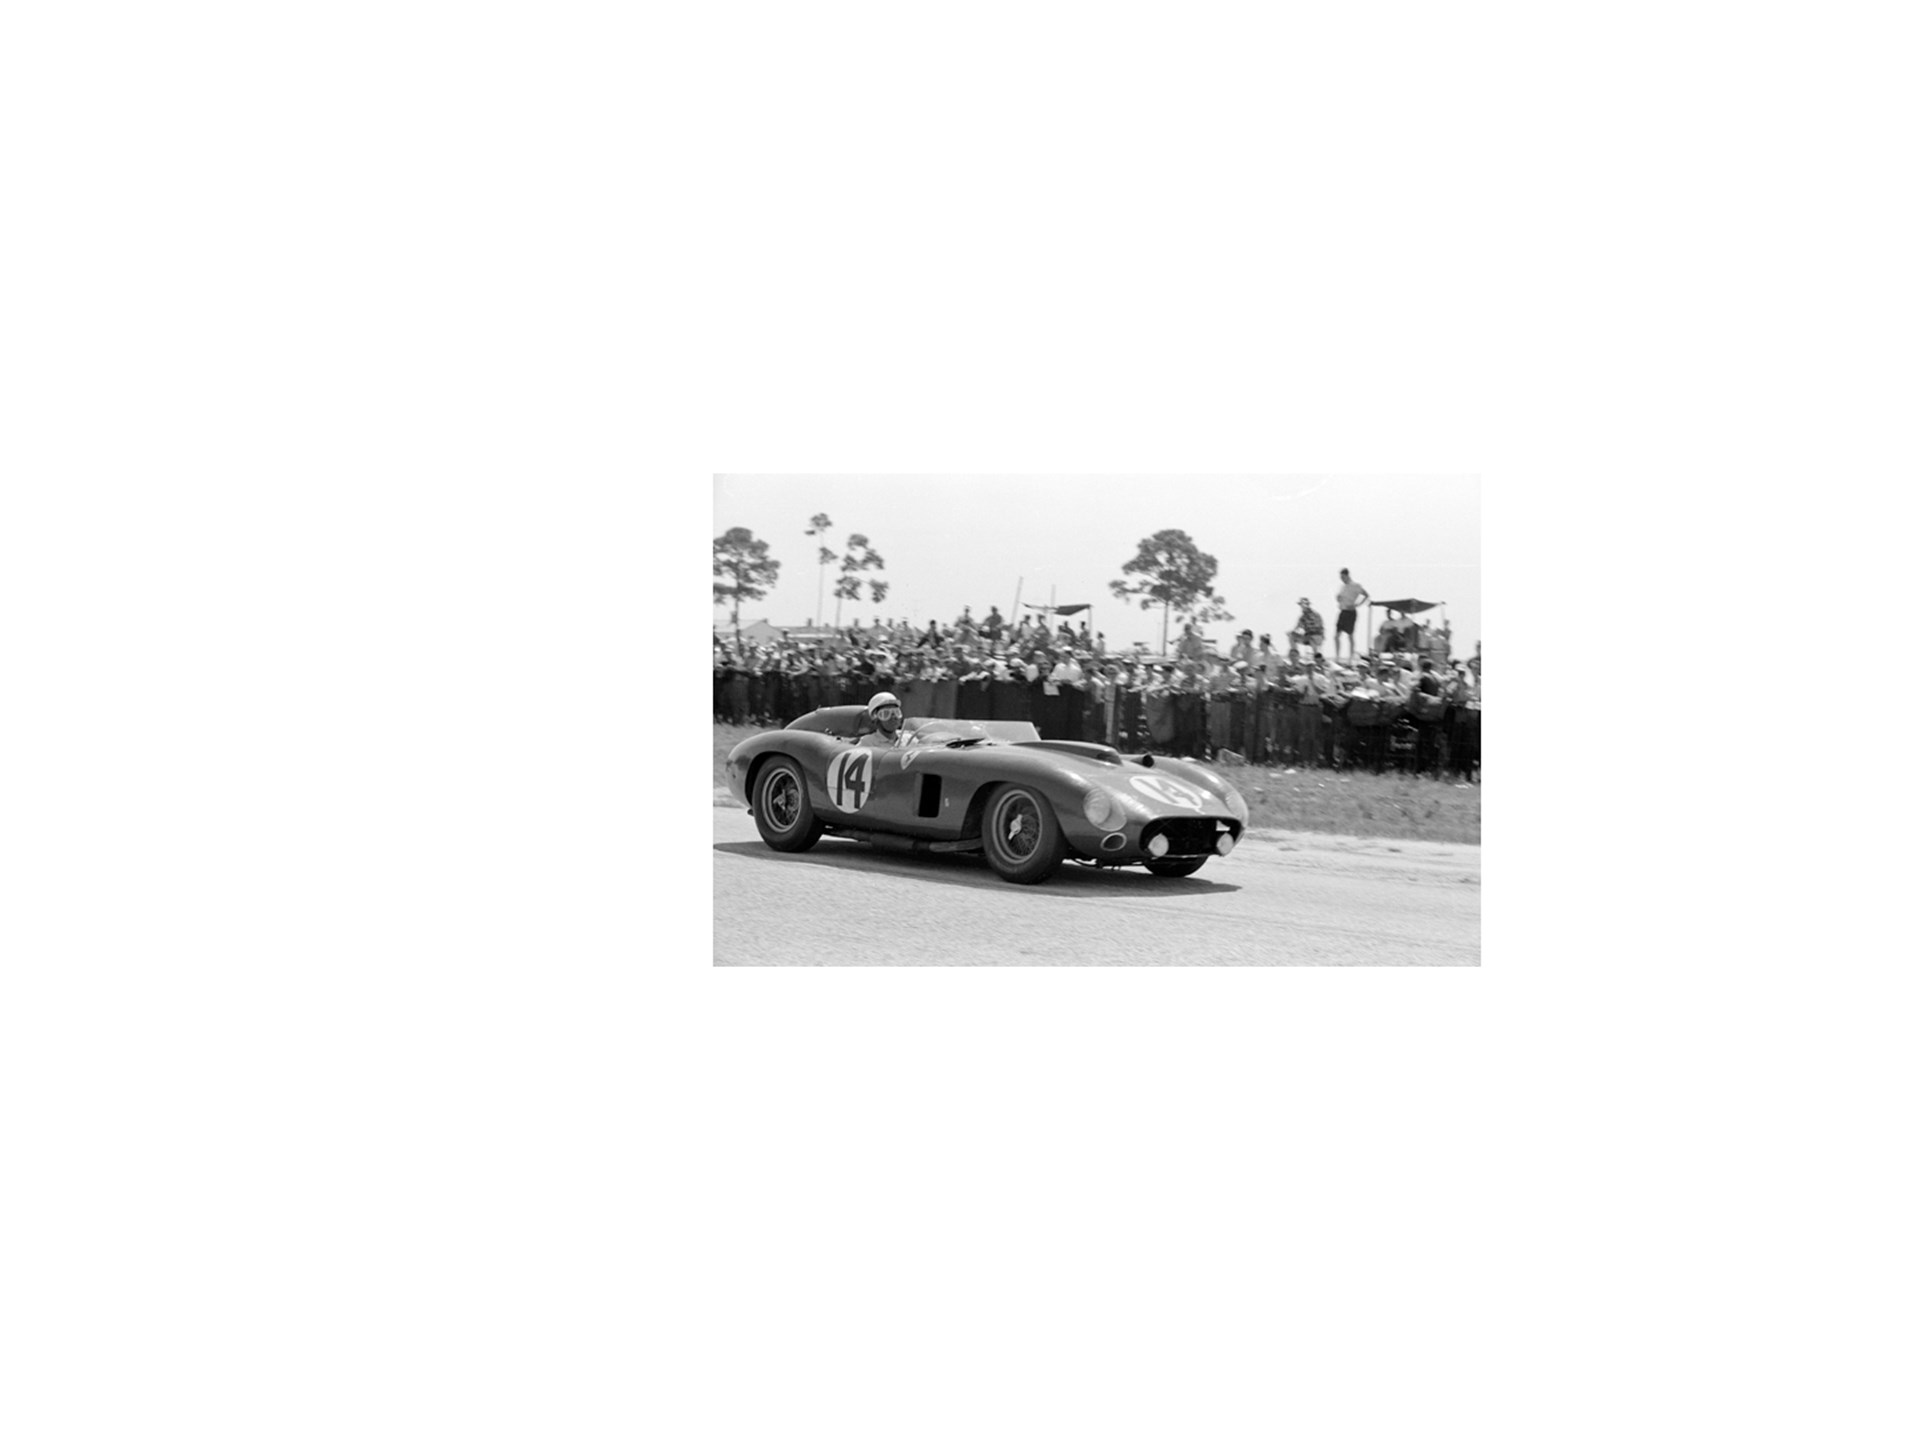 Chassis number 0628 at the 12 Hours of Sebring in March of 1957.